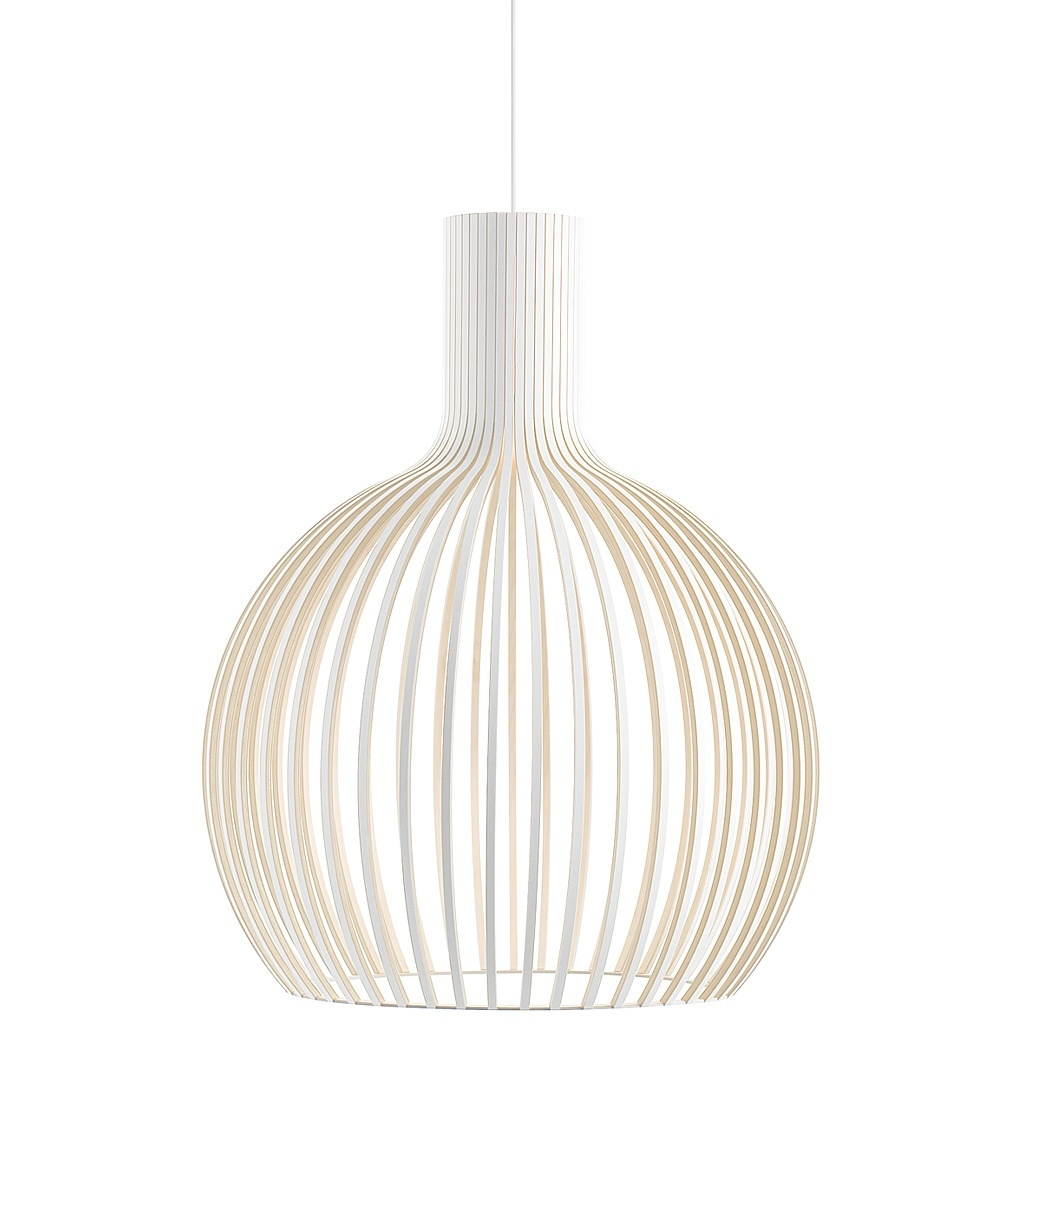 Secto Design Octo 4240 hanglamp-Wit